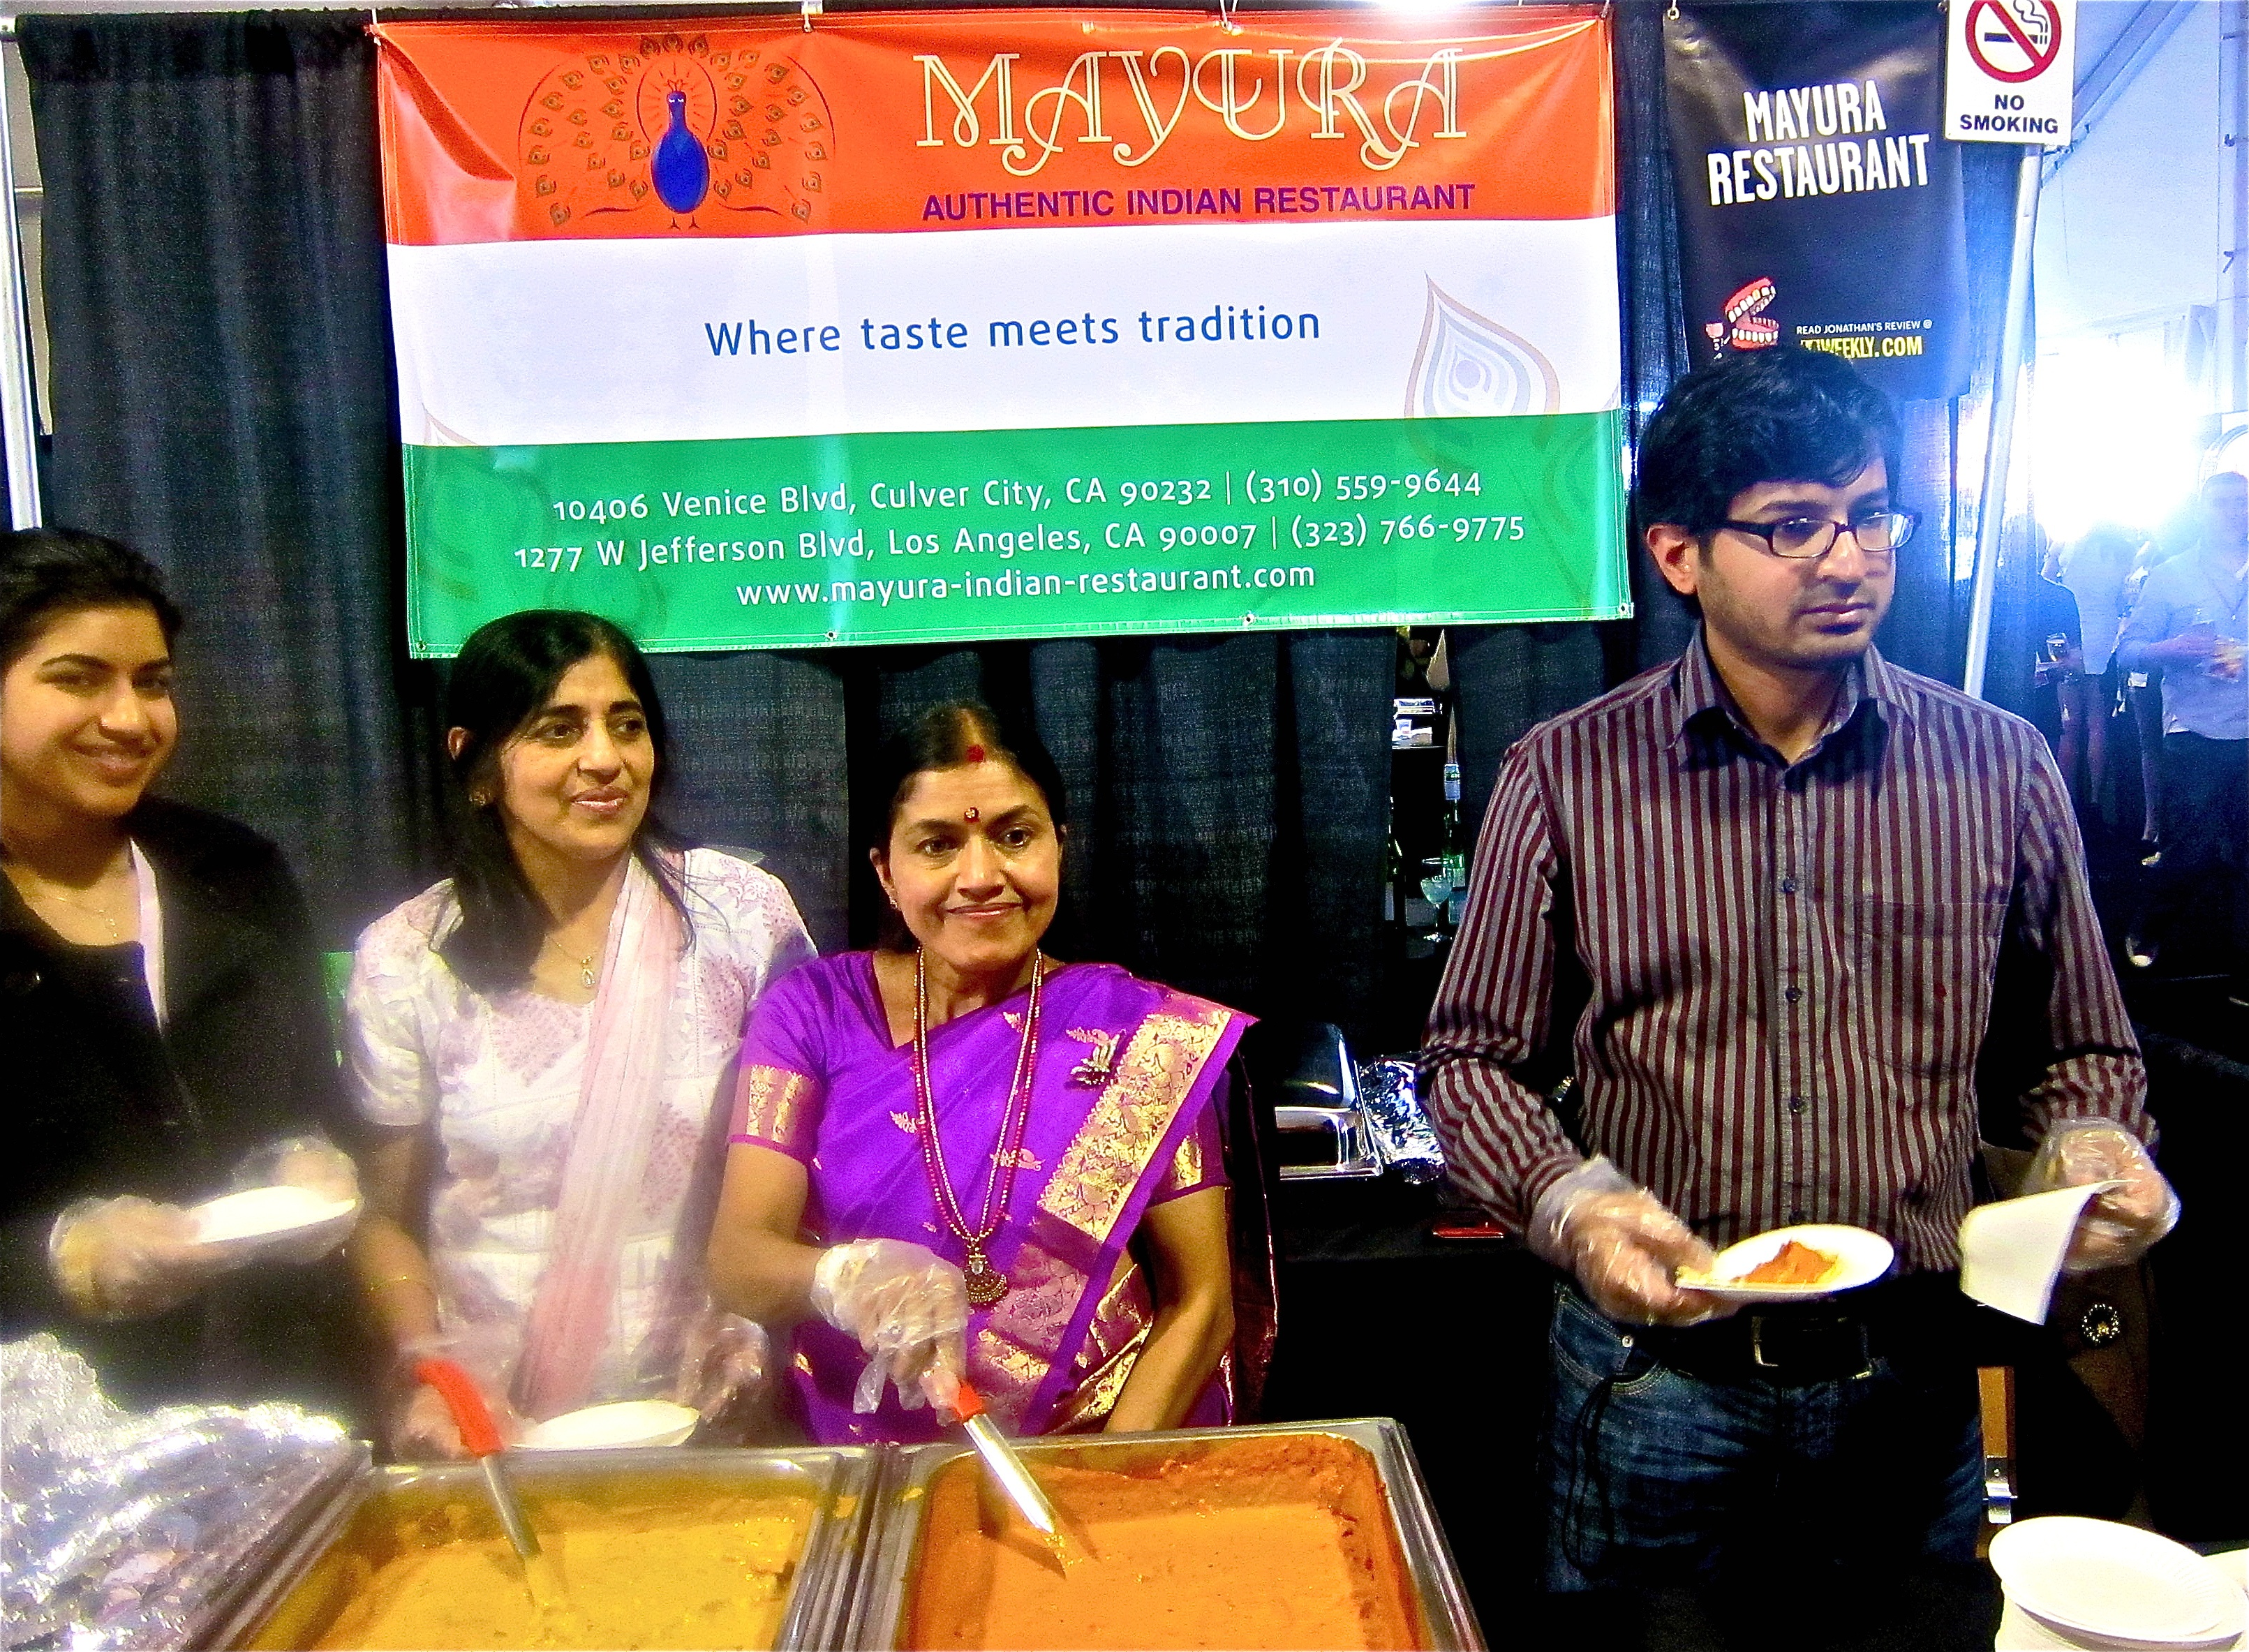 Mayura Indian restaurant in Culver City